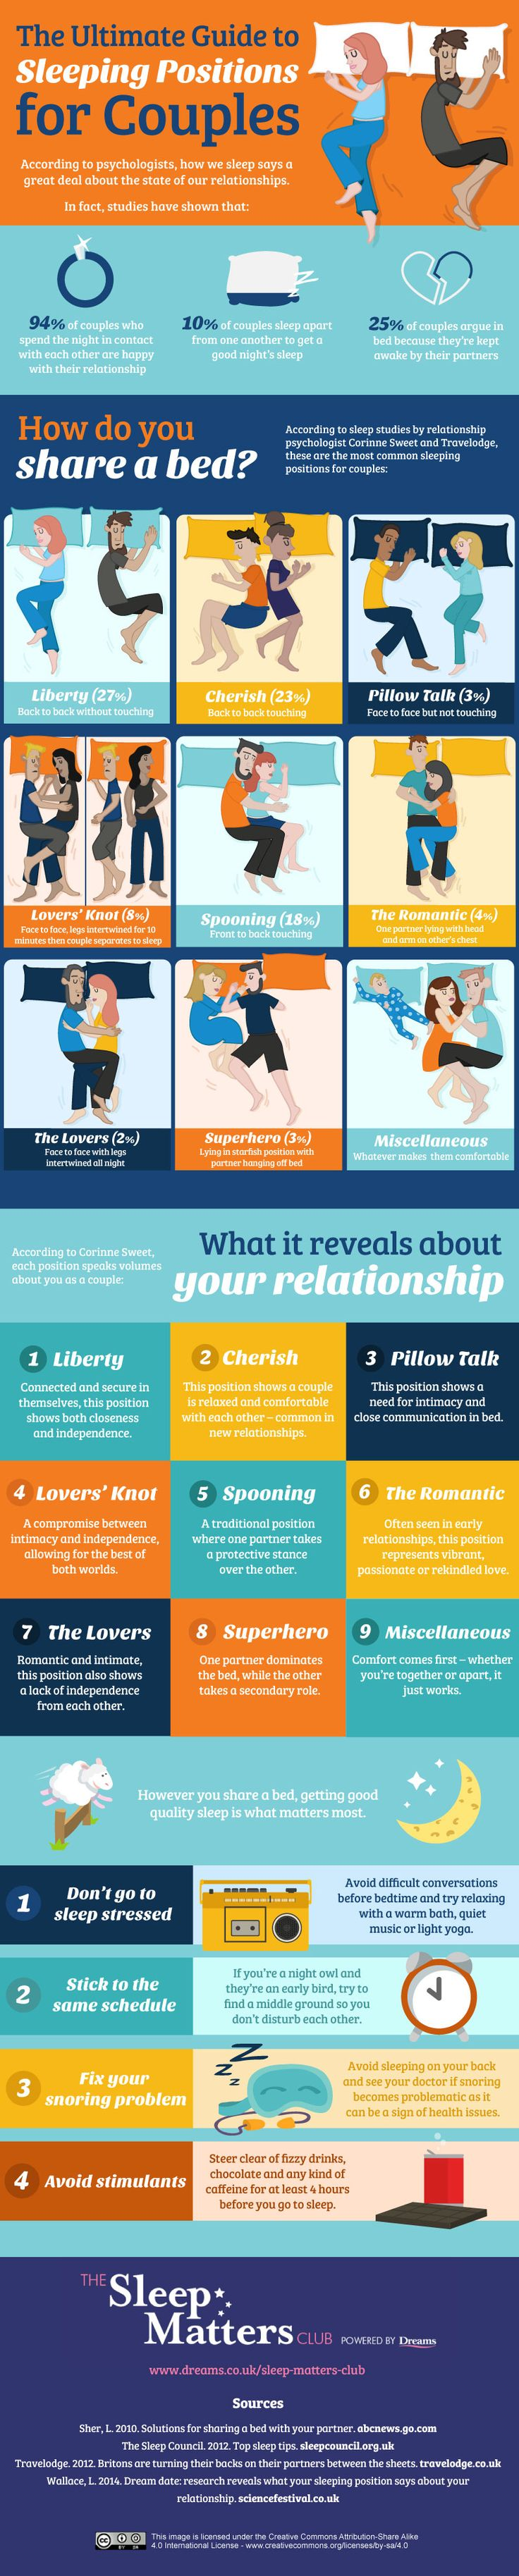 The Ultimate Guide to Sleeping Positions for Couples #infographic